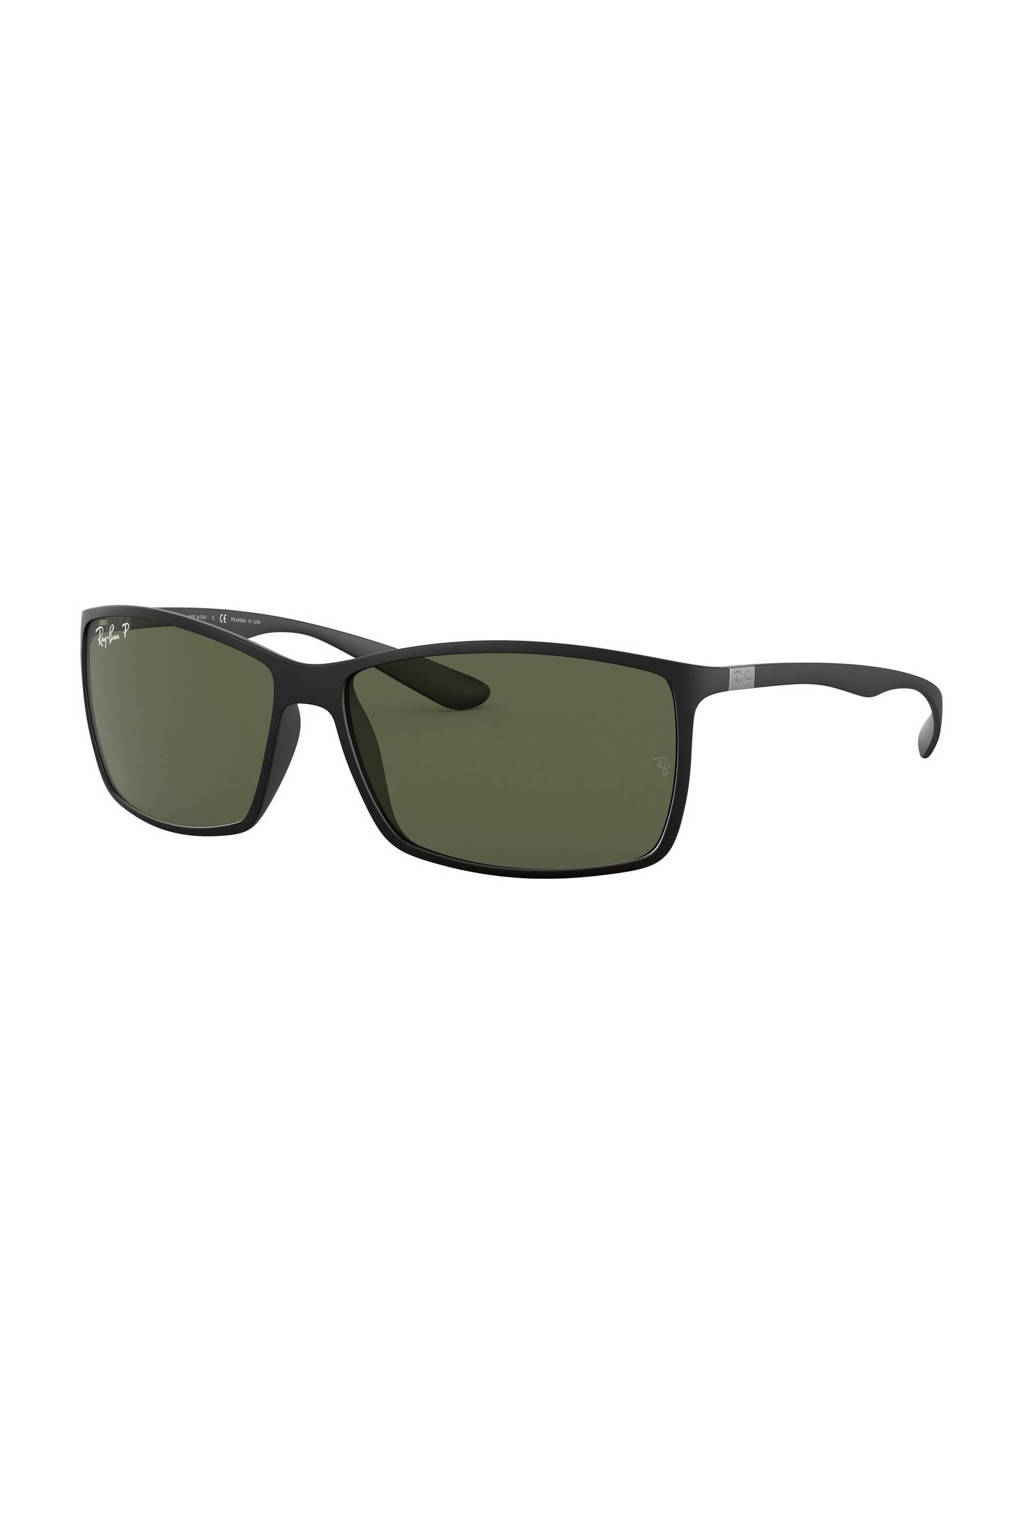 Ray-Ban zonnebril 0RB4179, Groen